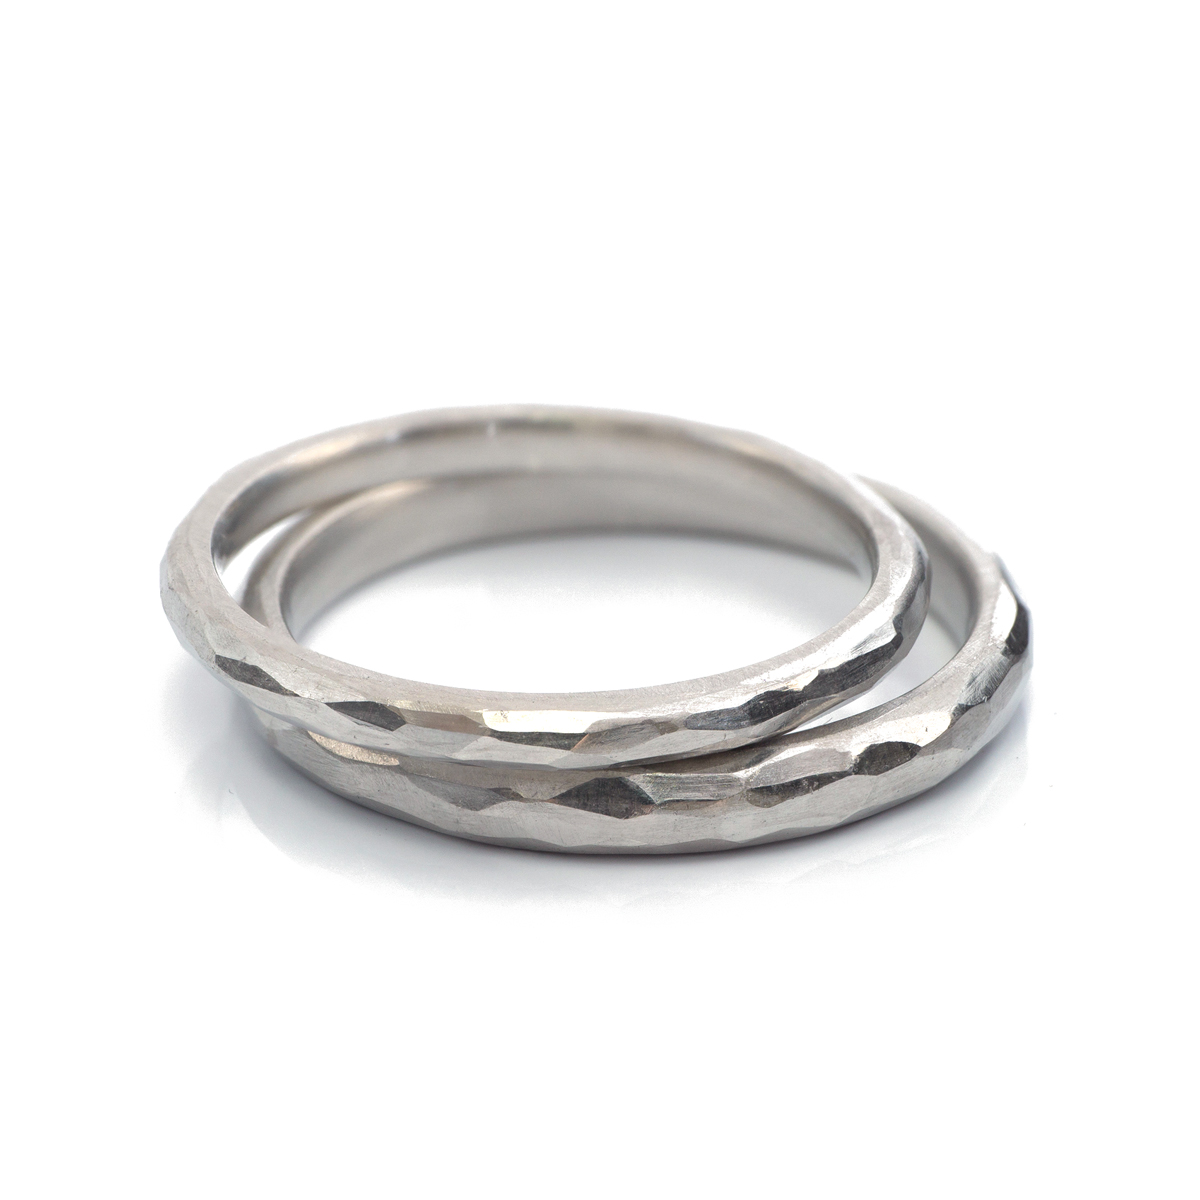 2.0mm and 2.6mm platinum  with hammered texture #屋久島でつくる結婚指輪